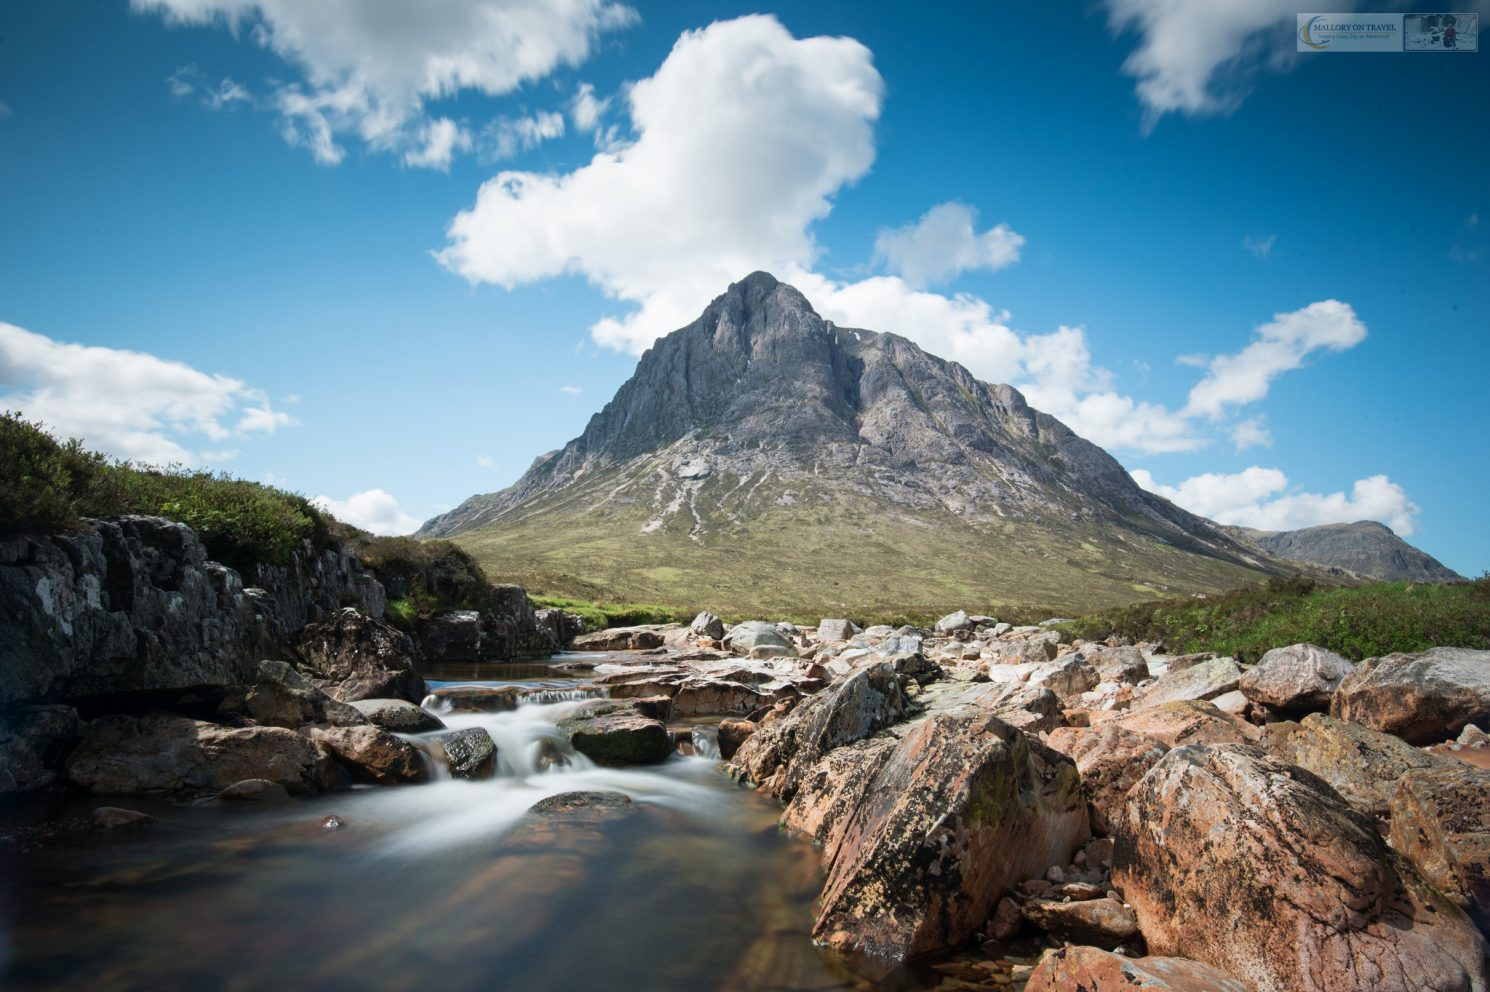 The Buichaille Etive Mor, great herdsman of Etive at the entrance to Glencoe in the highlands and islands of Scotland on Mallory on Travel adventure travel, photography, travel iain-mallory_scotland0116